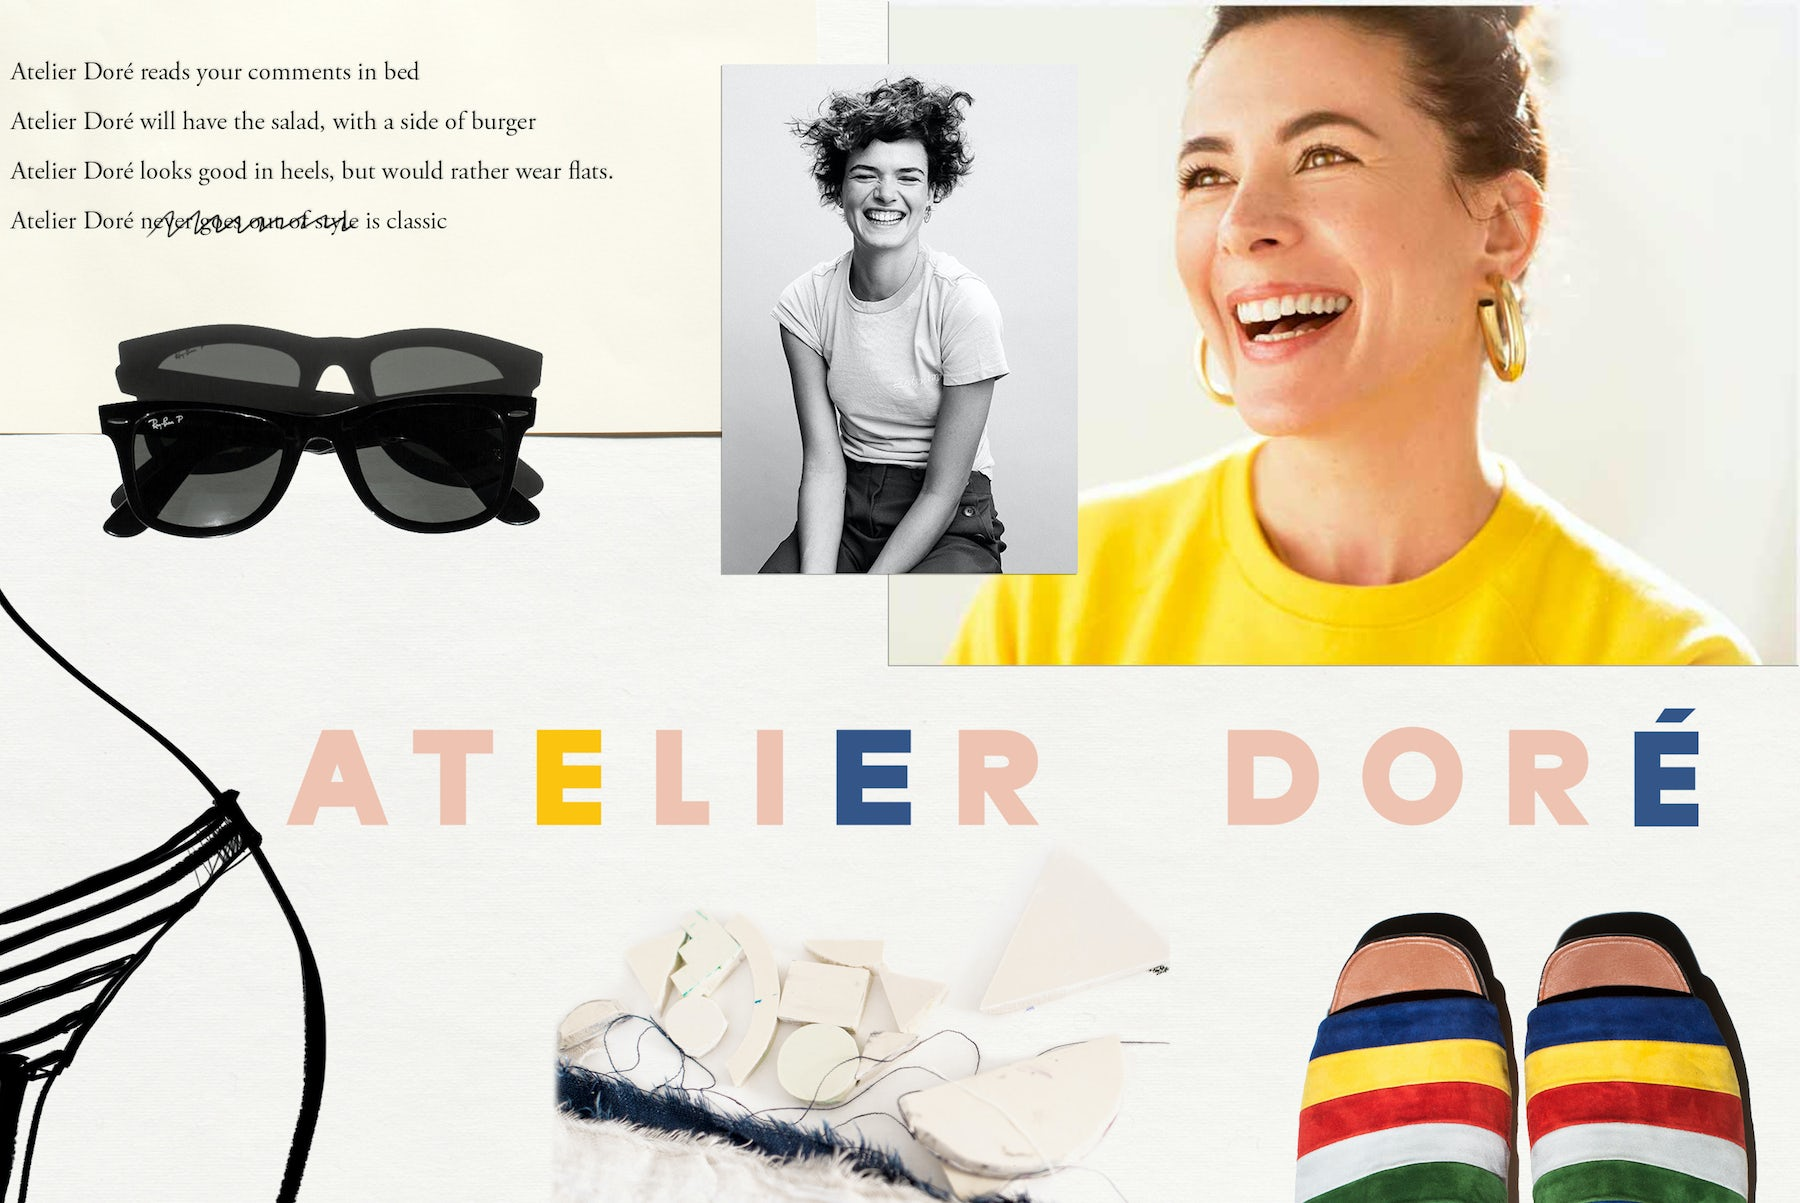 Atelier Doré | Source: Courtesy